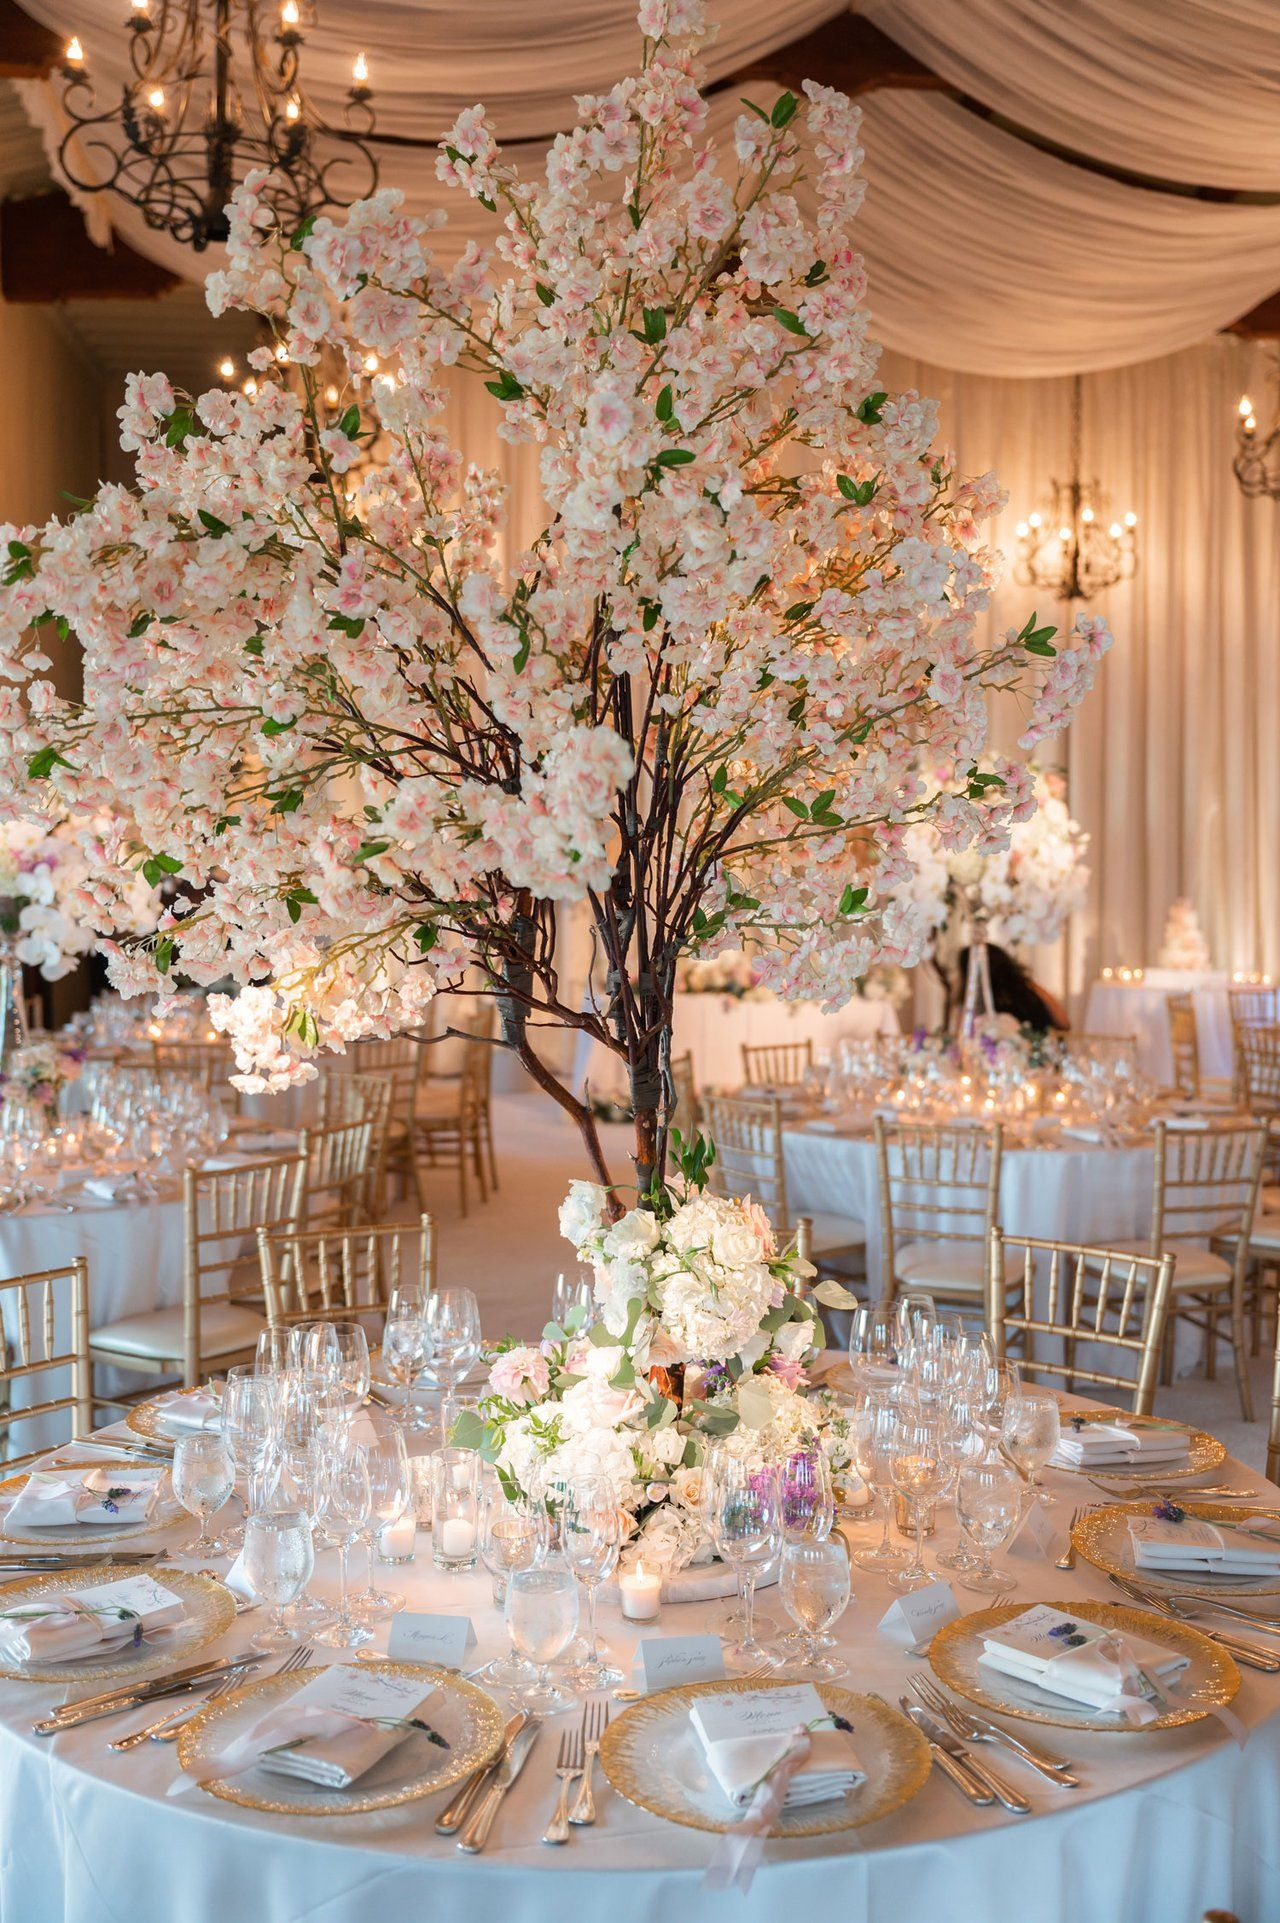 Wedding Centerpiece Tall Cherry Blossom Faux Tree With White Pink Flowers At Base R Cherry Blossom Centerpiece Flower Centerpieces Wedding Cherry Blossom Theme